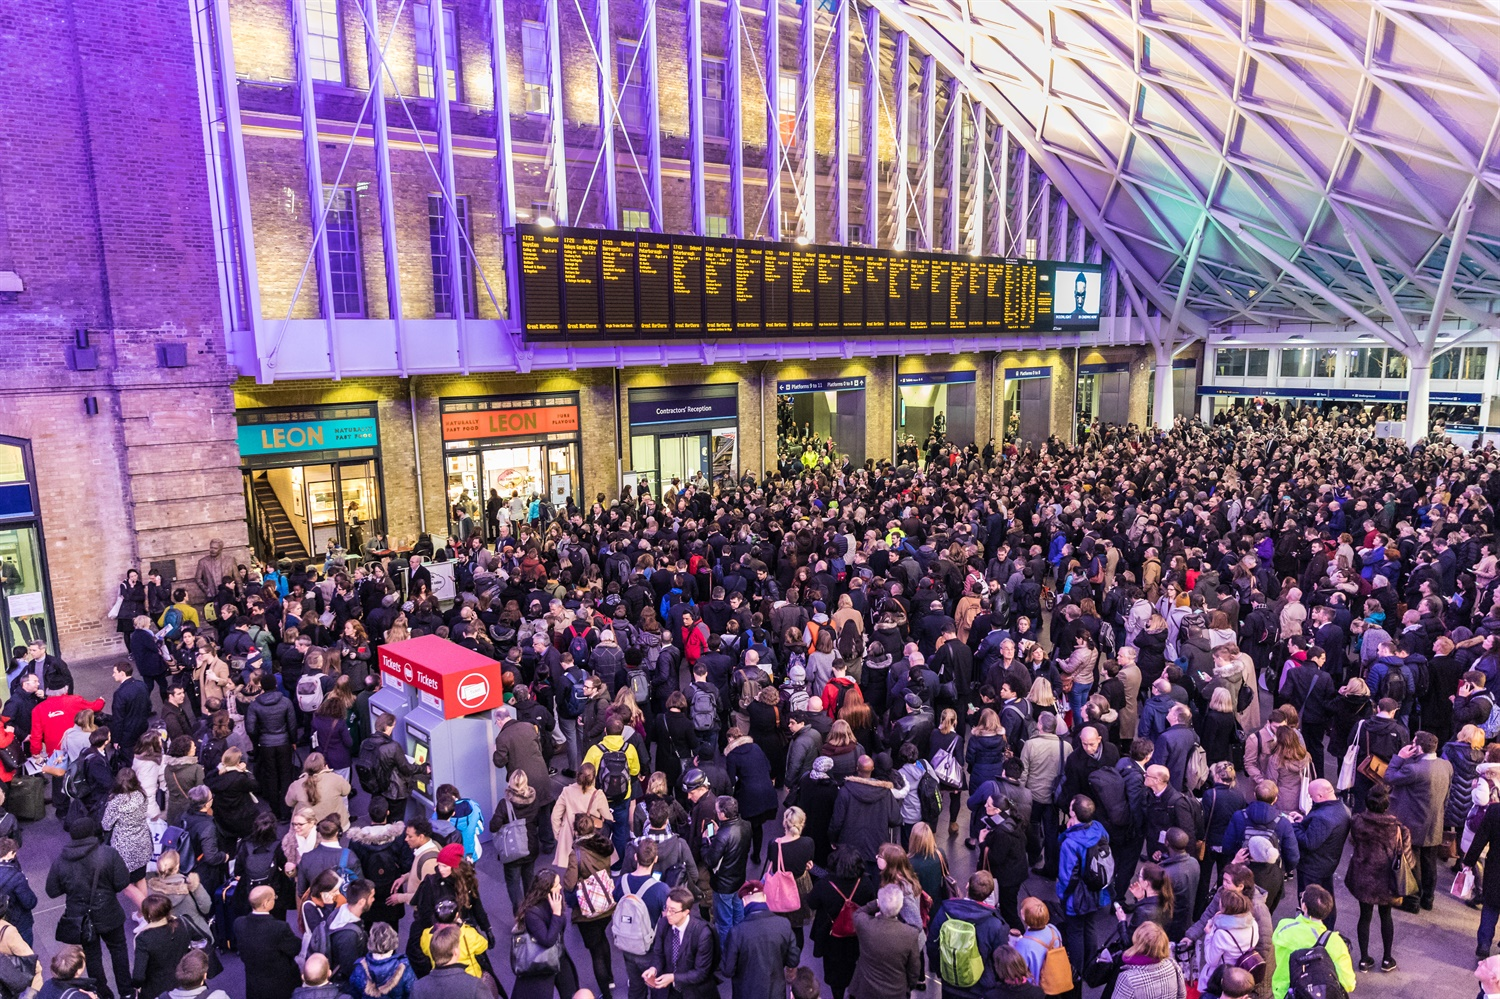 Timetable chaos: Rail industry 'lacks courage' to say no to impossible demands